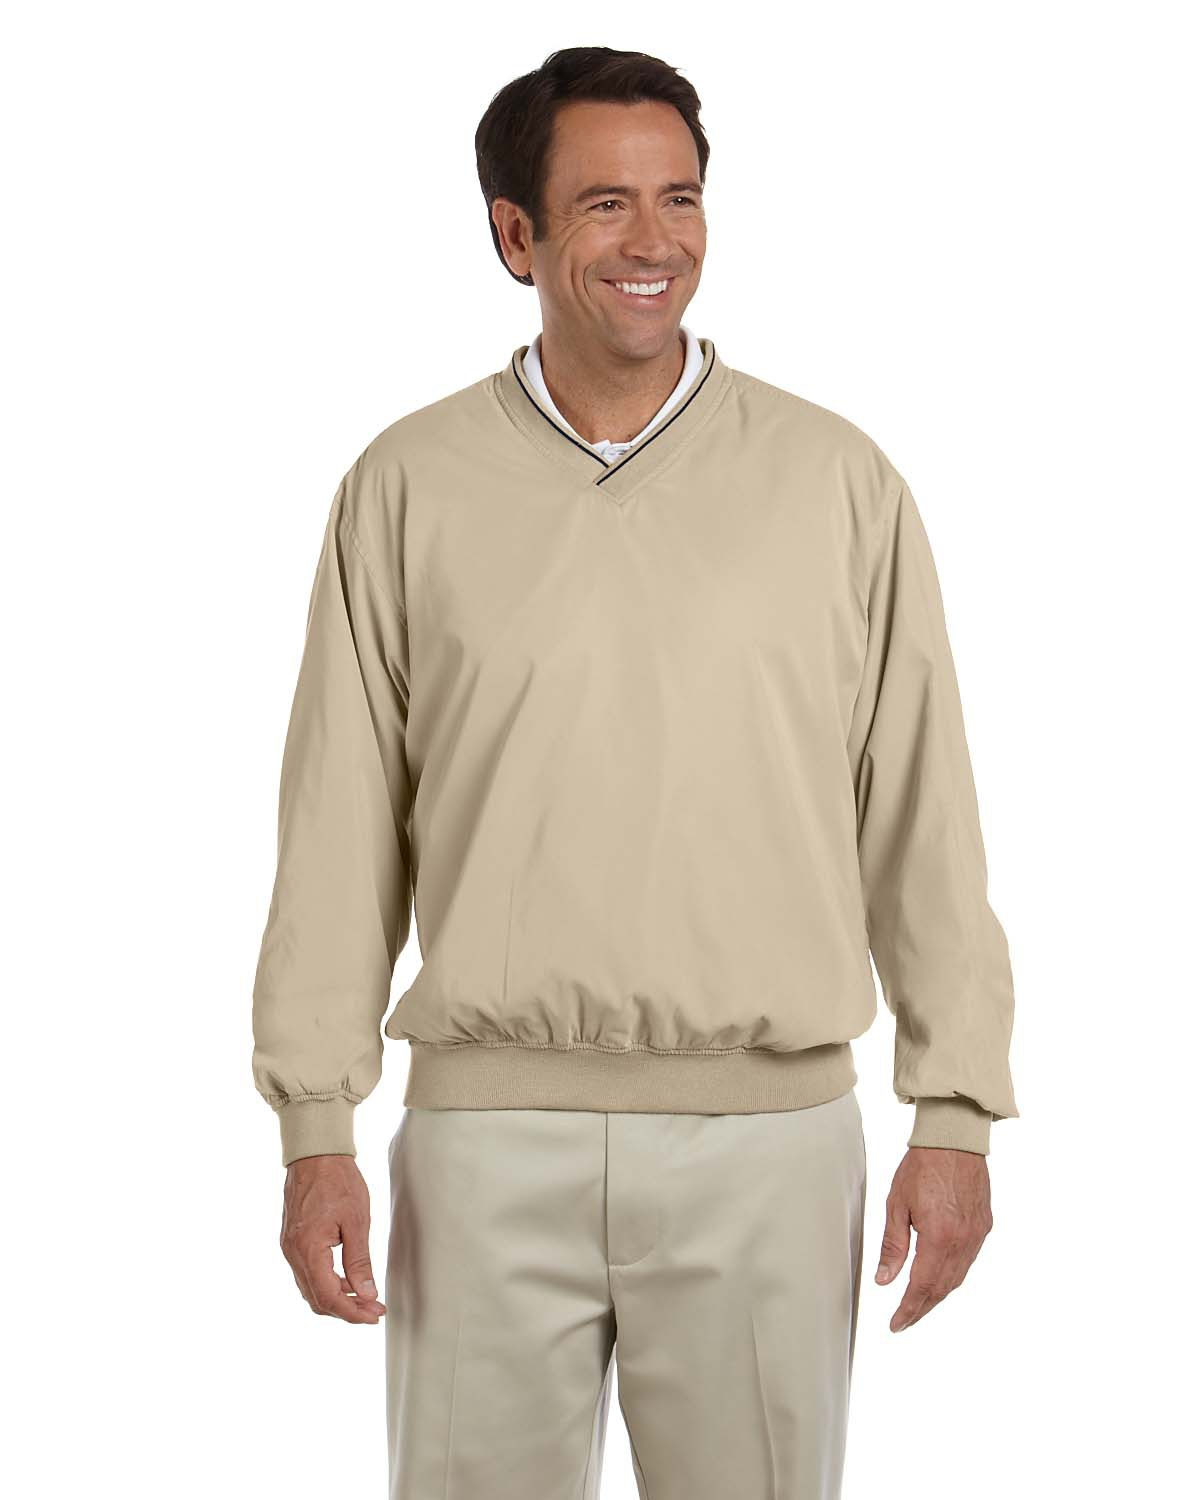 Men&39s Golf Wind Pullovers Mens Wind Pullover For Golf V-Neck